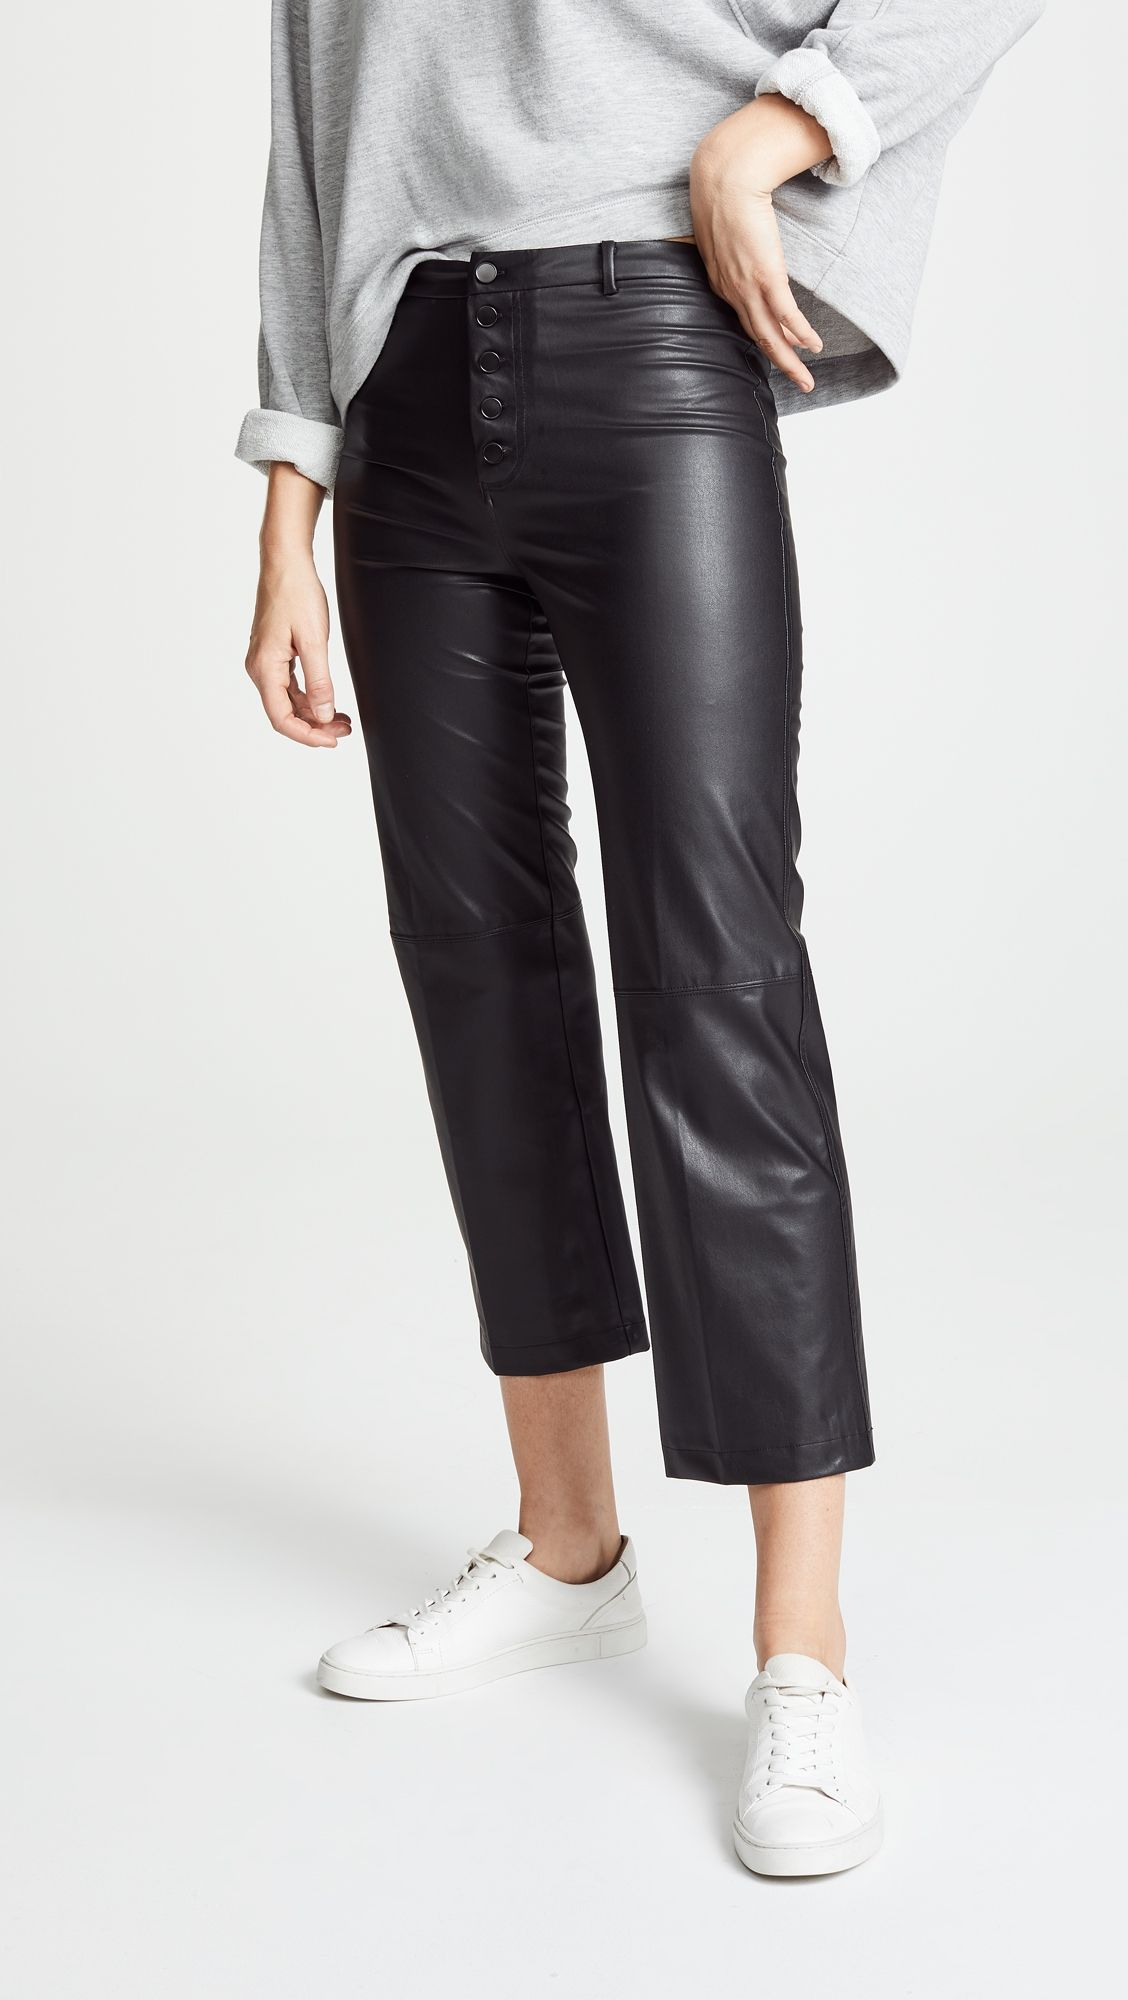 5ef8f29eb2af1 Faux Leather High Rise Pants | Products | High rise pants, Pants ...